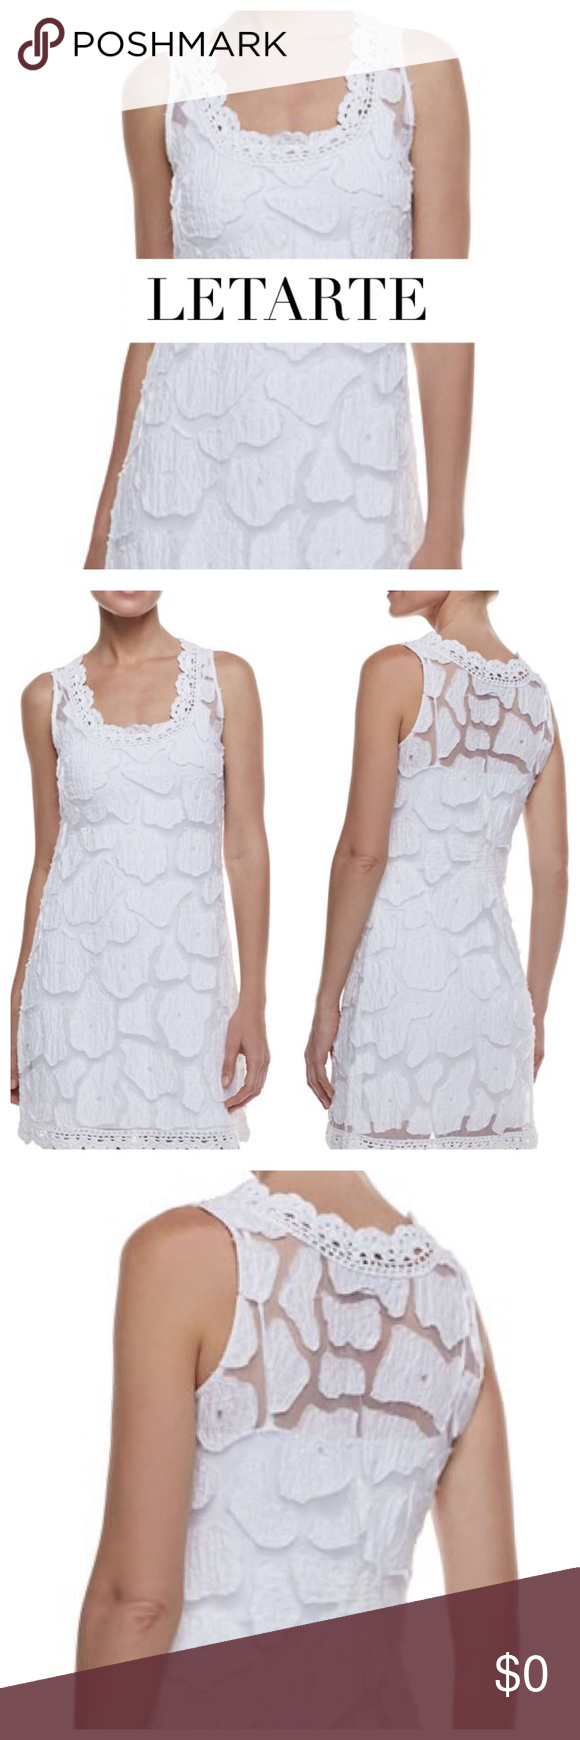 """HP LETARTE White """"Kissing Fish"""" Dress Coverup LETARTE! You can always feel the bohemian island inspiration whenever you wear anything from Letarte. This sleeveless """"kissing fish"""" cover up features a scoop neckline, sleeveless; full shoulder coverage, slim silhouette finished wth a hem that hits at thigh. Size: S  Approx. Measurements: Bust 30"""", Waist: 27"""", Hips: 33"""", Length 34.5"""" Material: 100% Viscose. Sold Out! Condition: Excellent Letarte Swim Coverups"""